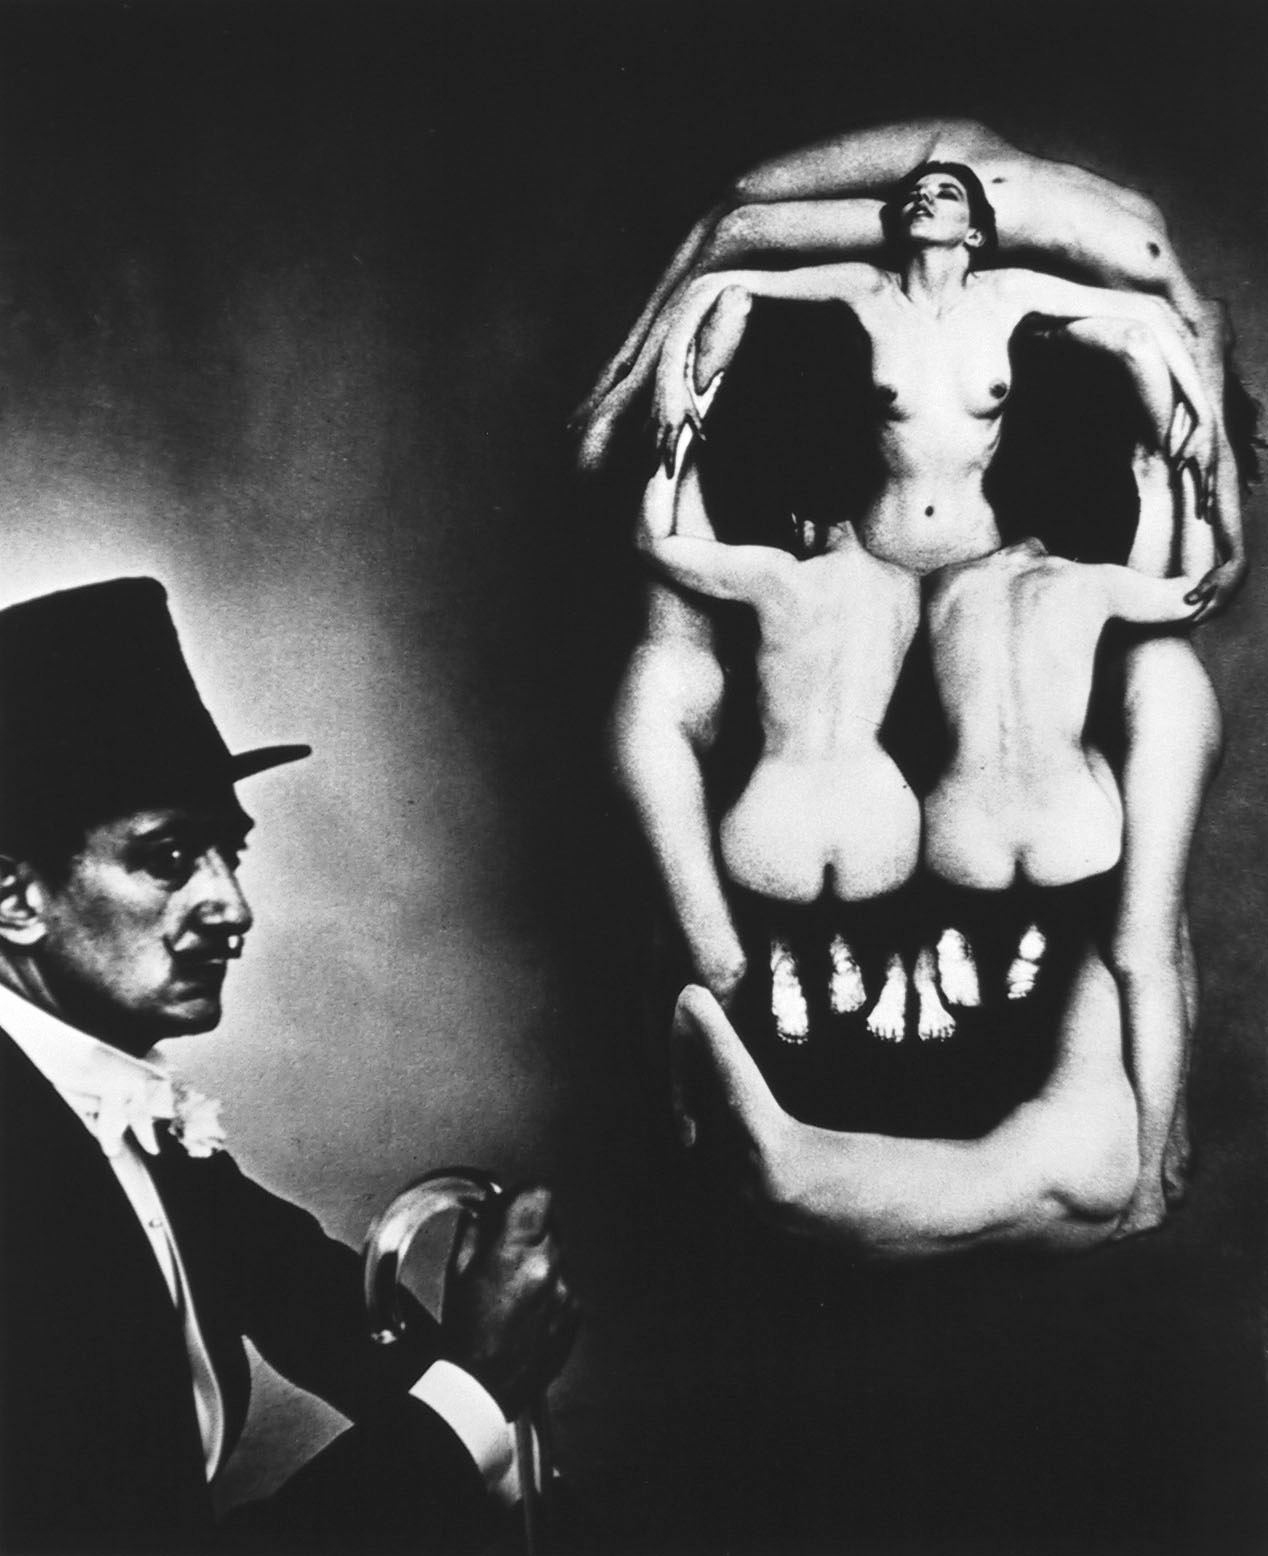 http://3.bp.blogspot.com/-oS2wpvZEV2c/TbSorYrOZ5I/AAAAAAAADVs/9oCwTxCzKhU/s1600/in-voluptas-mors-by-phillippe-halsmann-in-collaboration-with-salvador-dali-pictured-1951.jpg